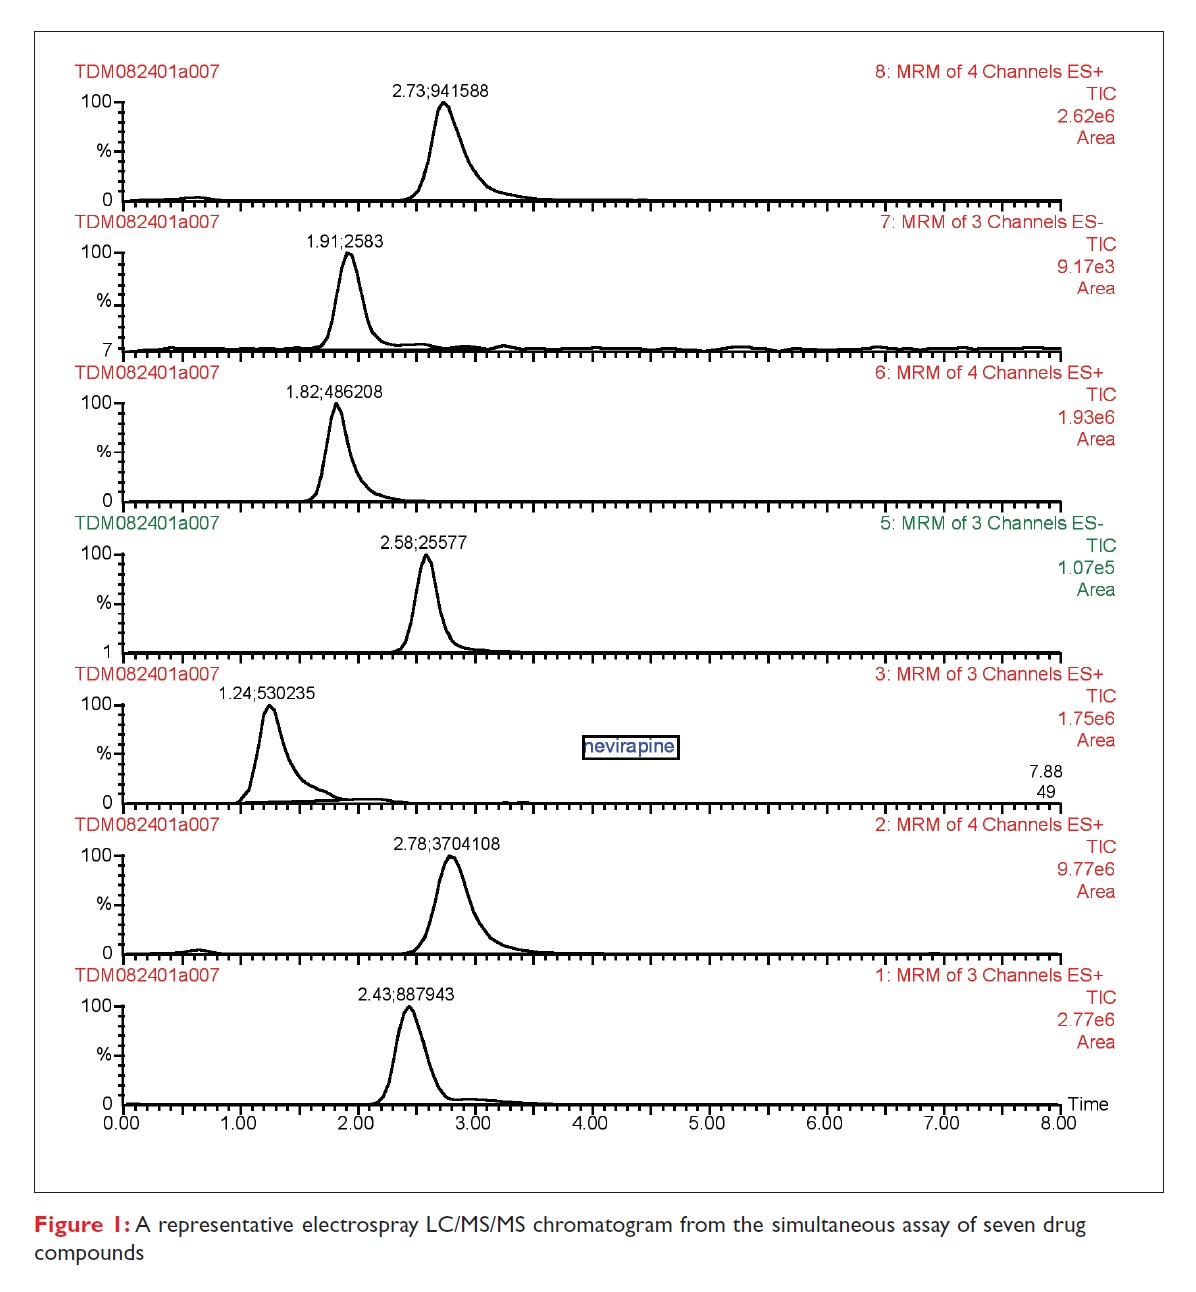 Figure 1 A representative electrospray LC/MS/MS chromatogram from the simultaneous assay of seven drug compounds